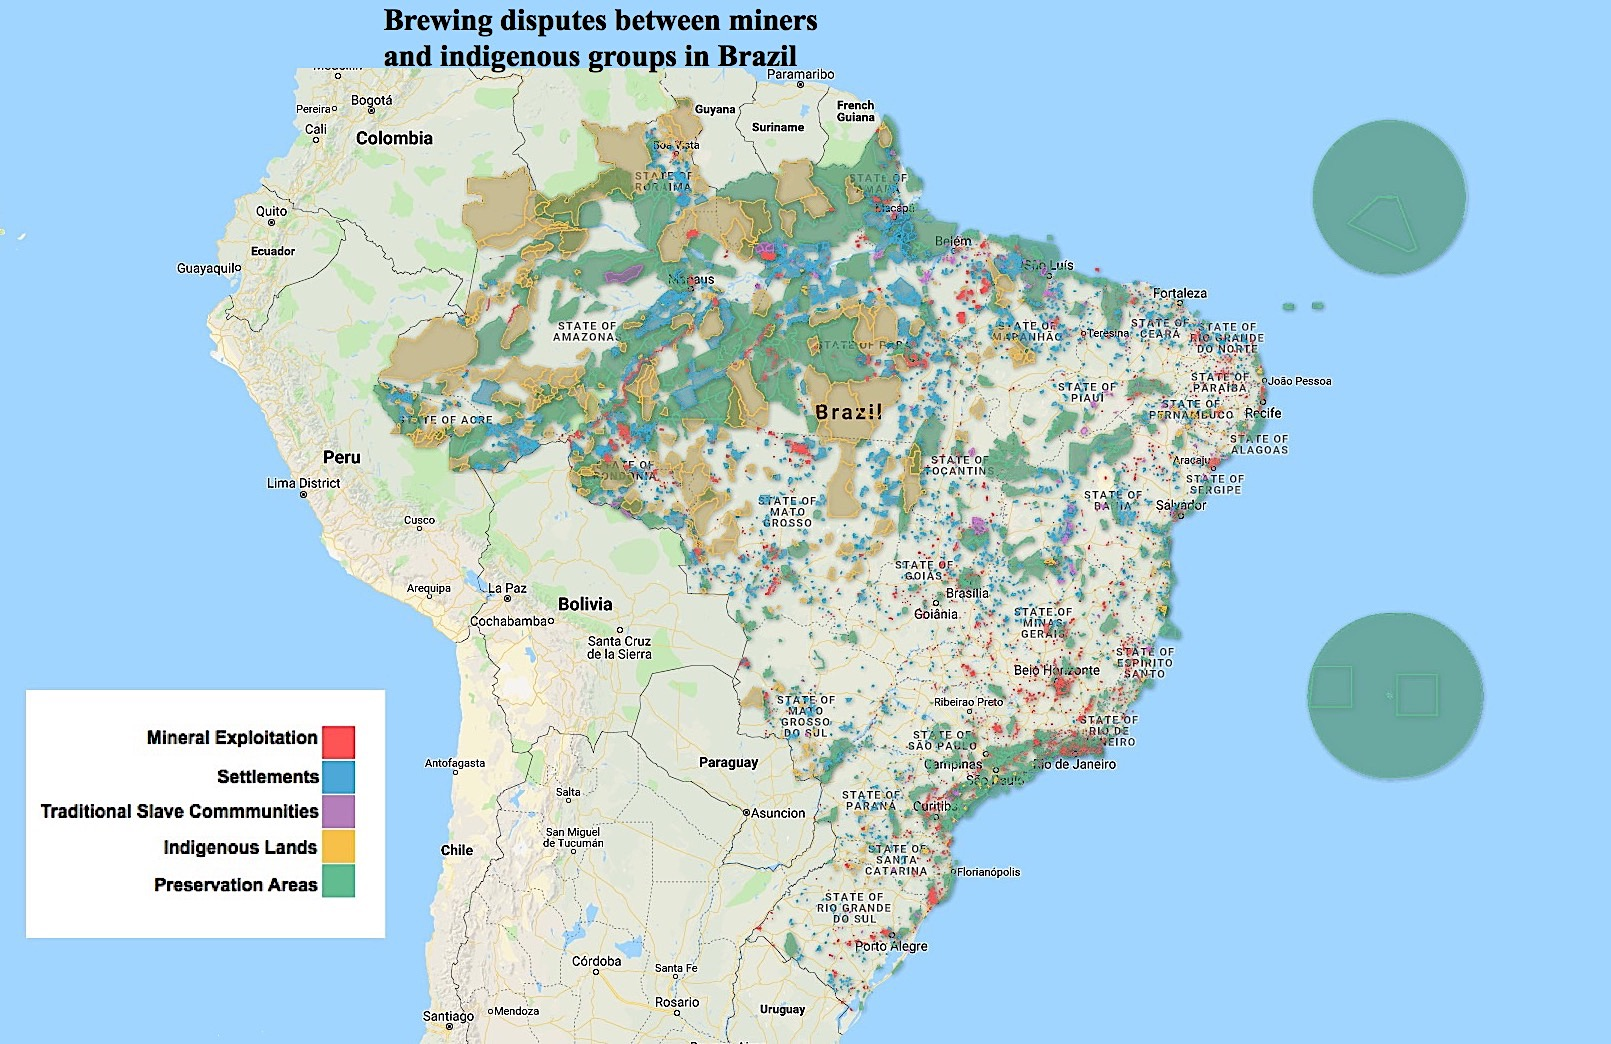 Amazon's riches up for grab as Brazil to open indigenous reserves to mining